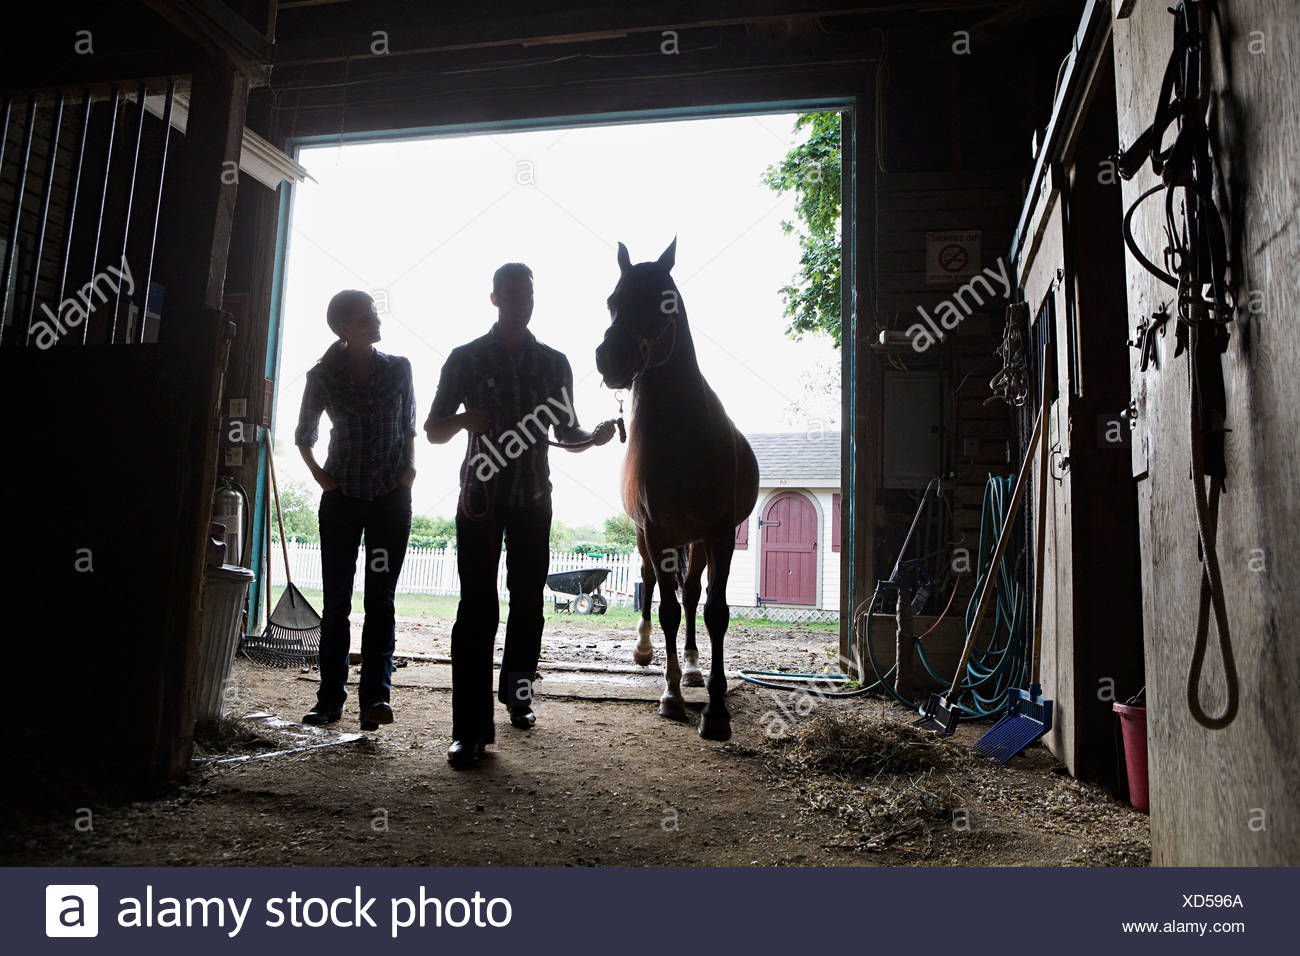 Two people with horse in stable - Stock Image